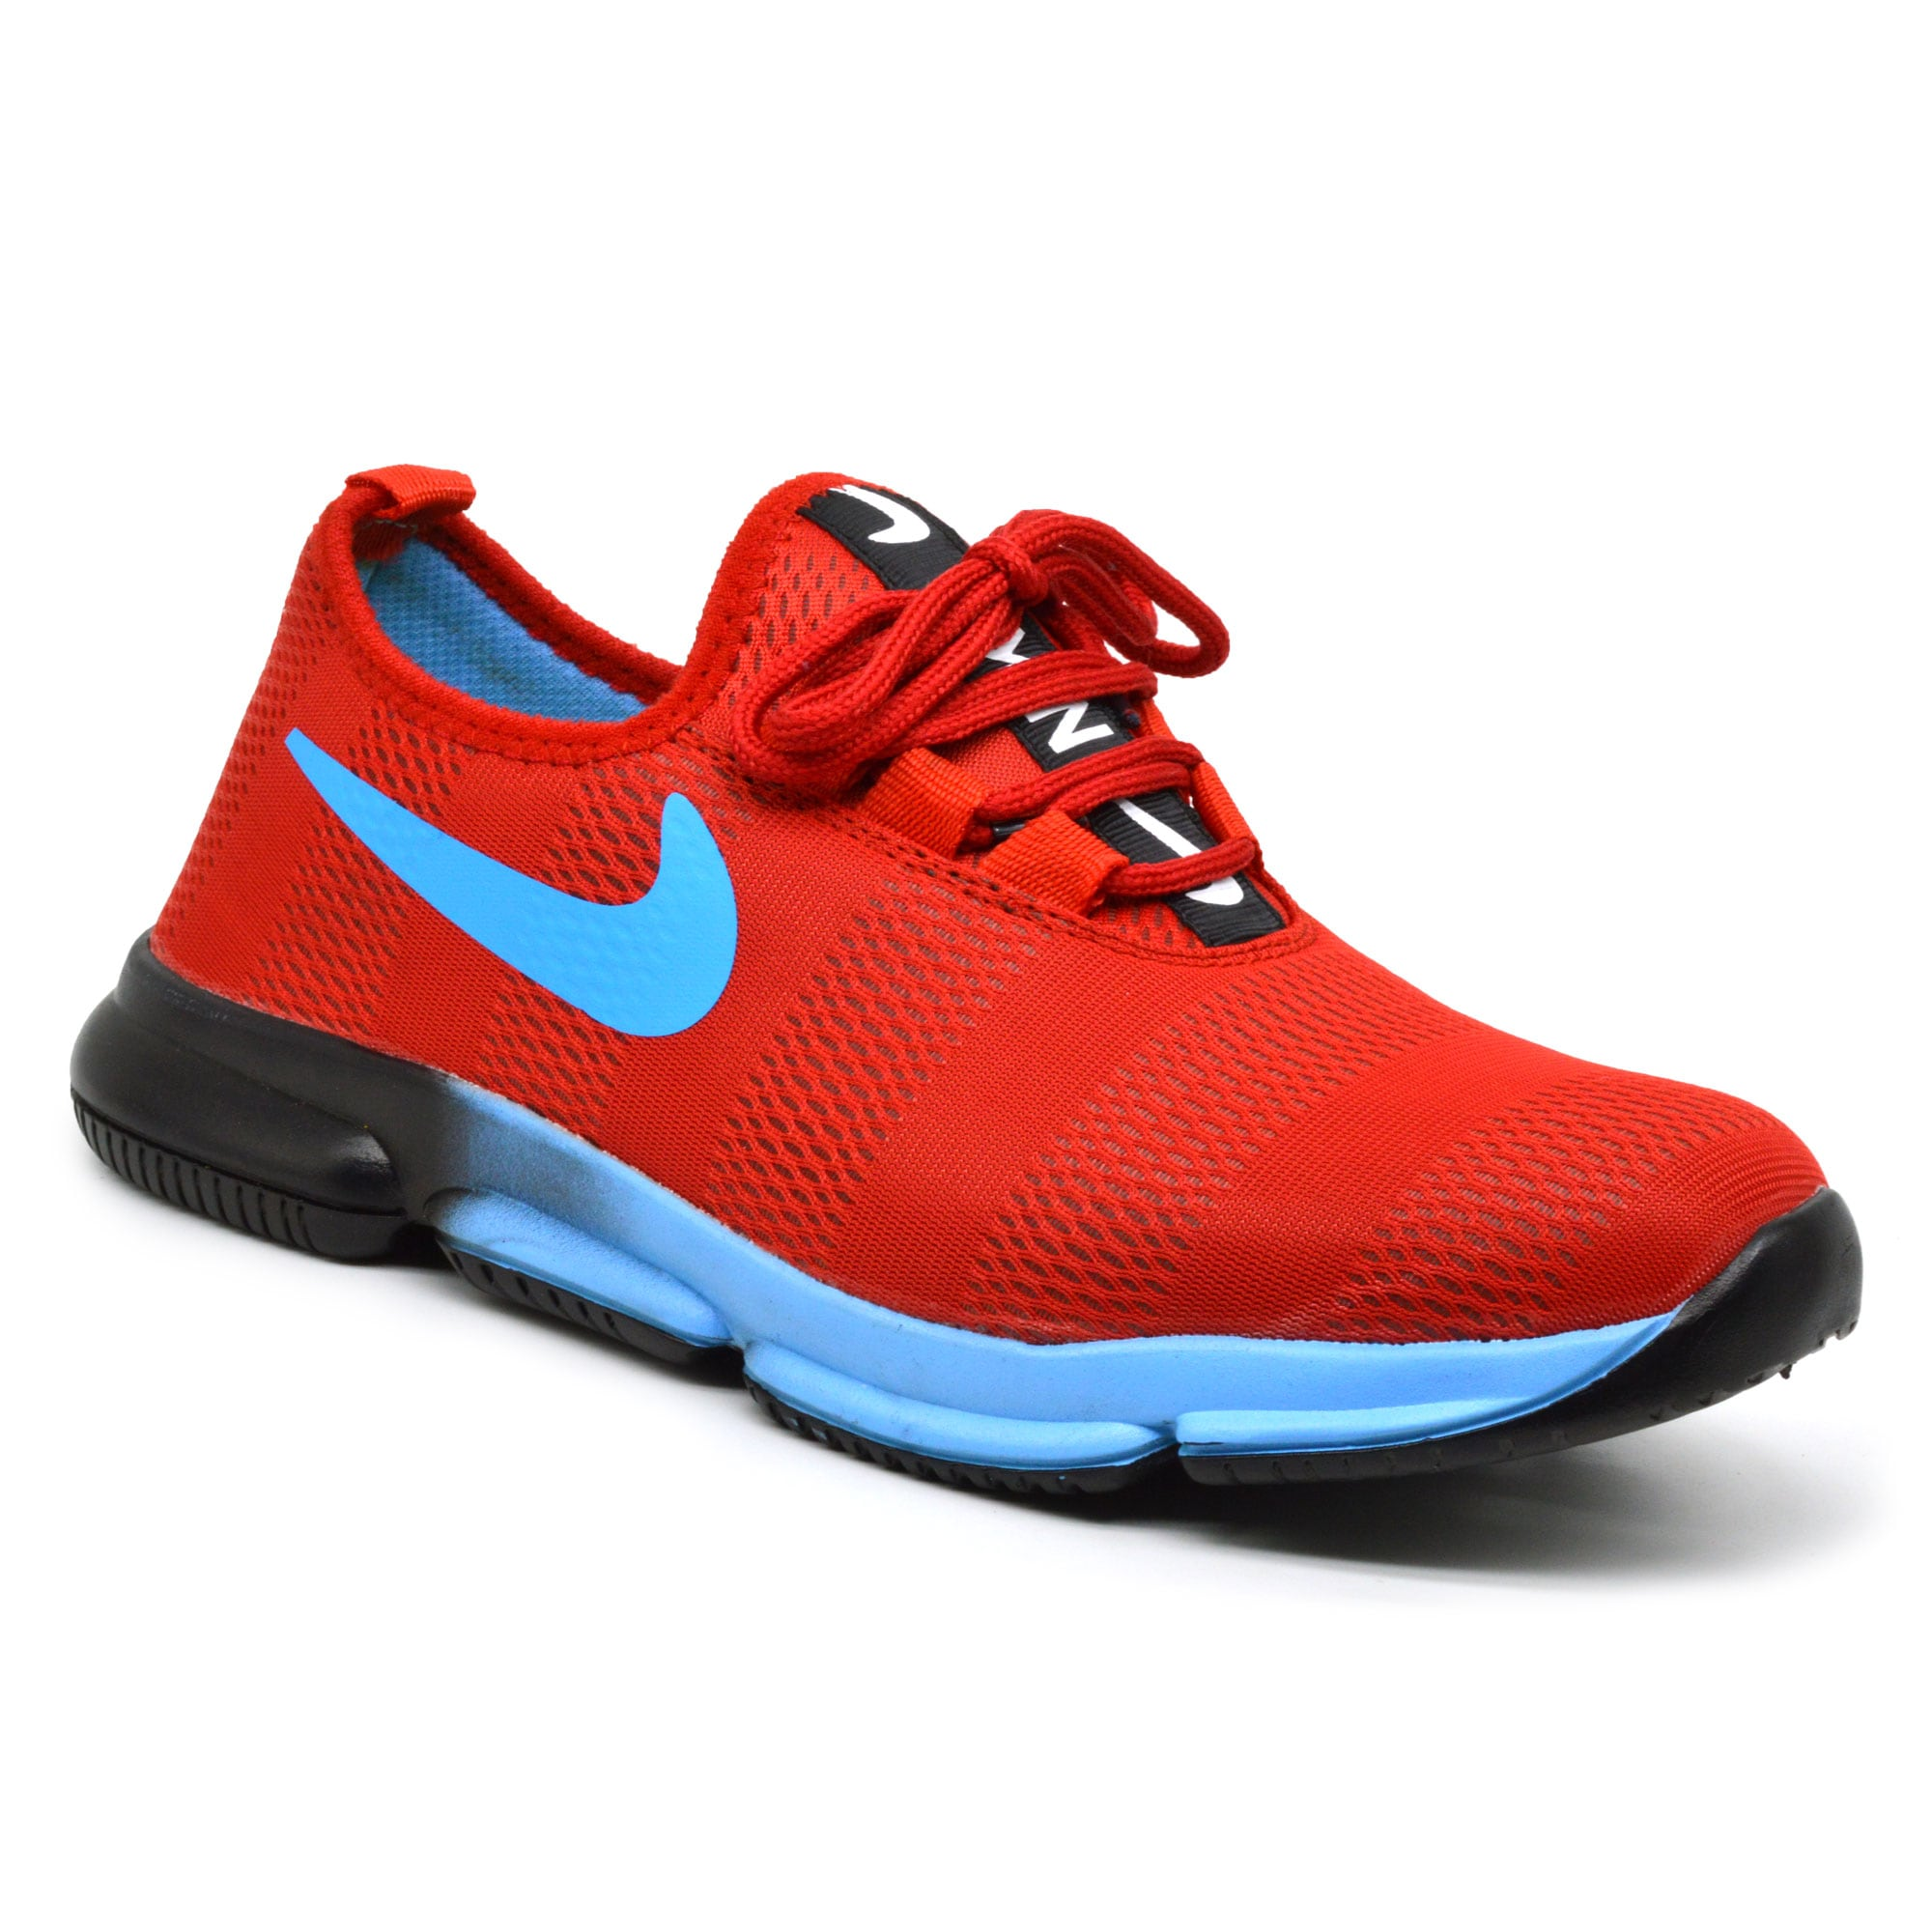 IMCOLUS15.171_RED  OUTDOOR WEAR & FLEXIBLE MENS Sports Shoes SHOES  IMCOLUS15.171_RED (RED,6TO10,8 PAIR)